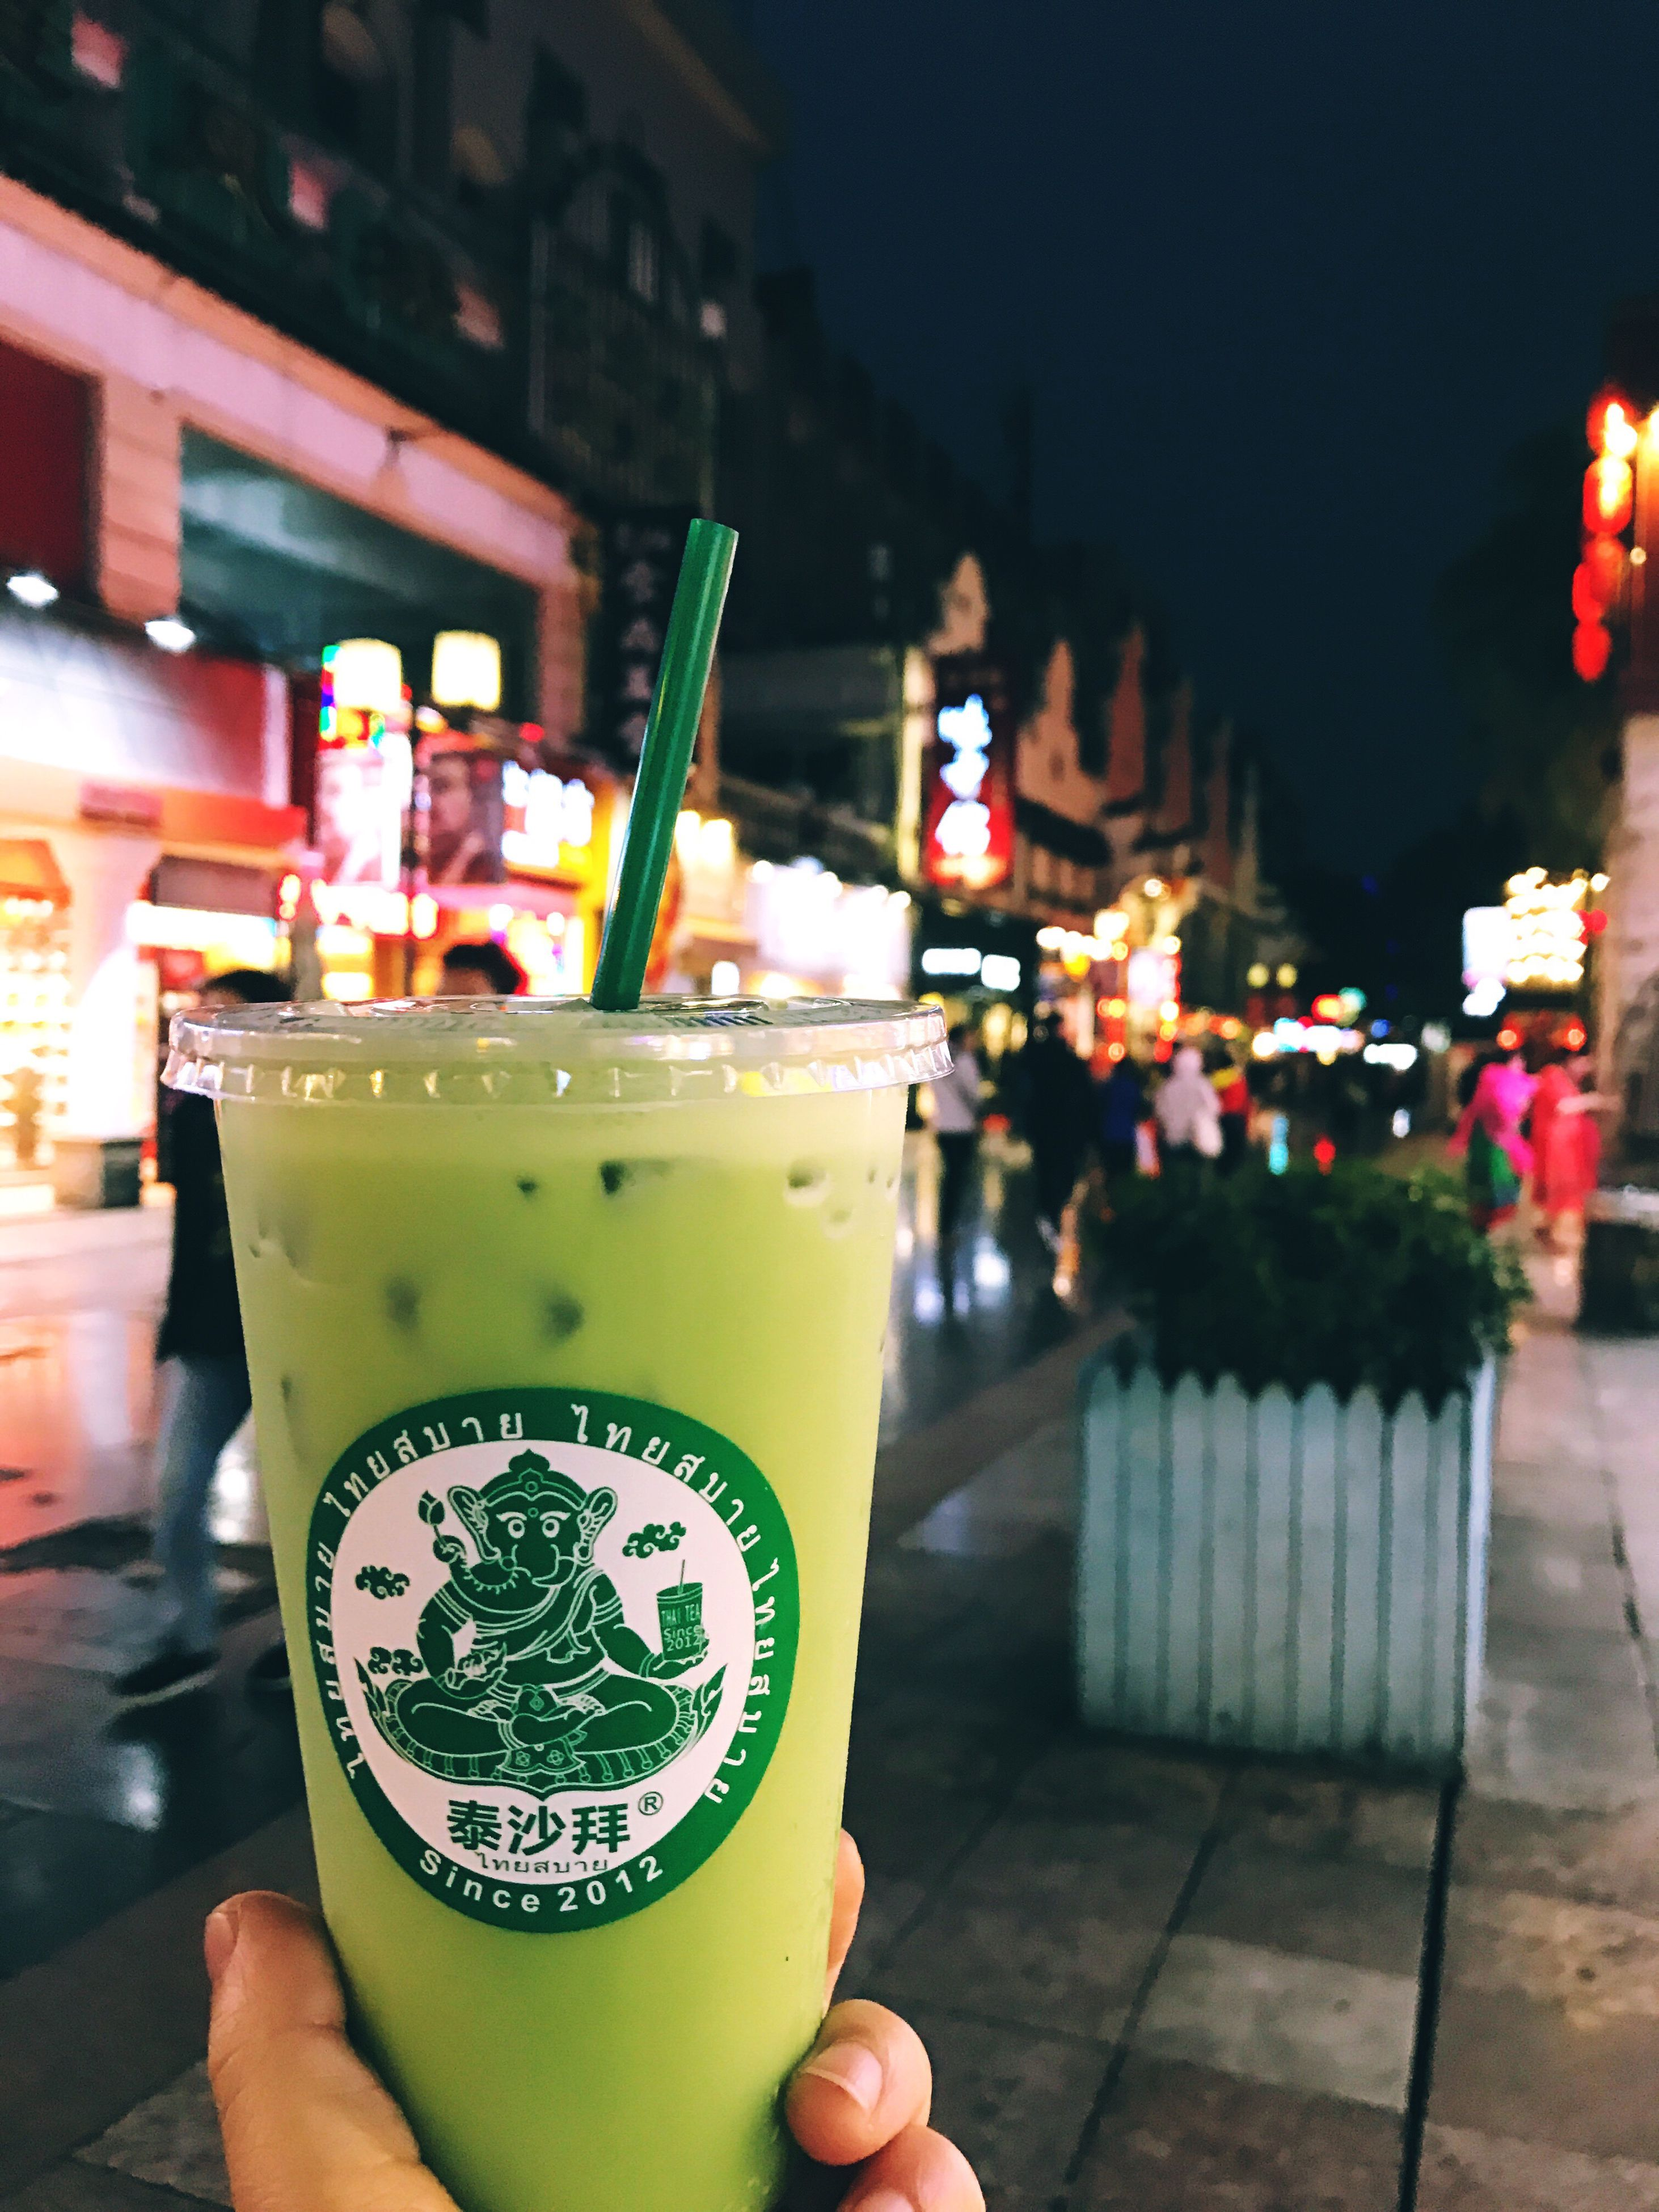 night, refreshment, illuminated, freshness, food and drink, drink, green color, real people, drinking straw, human body part, drinking glass, human hand, close-up, outdoors, people